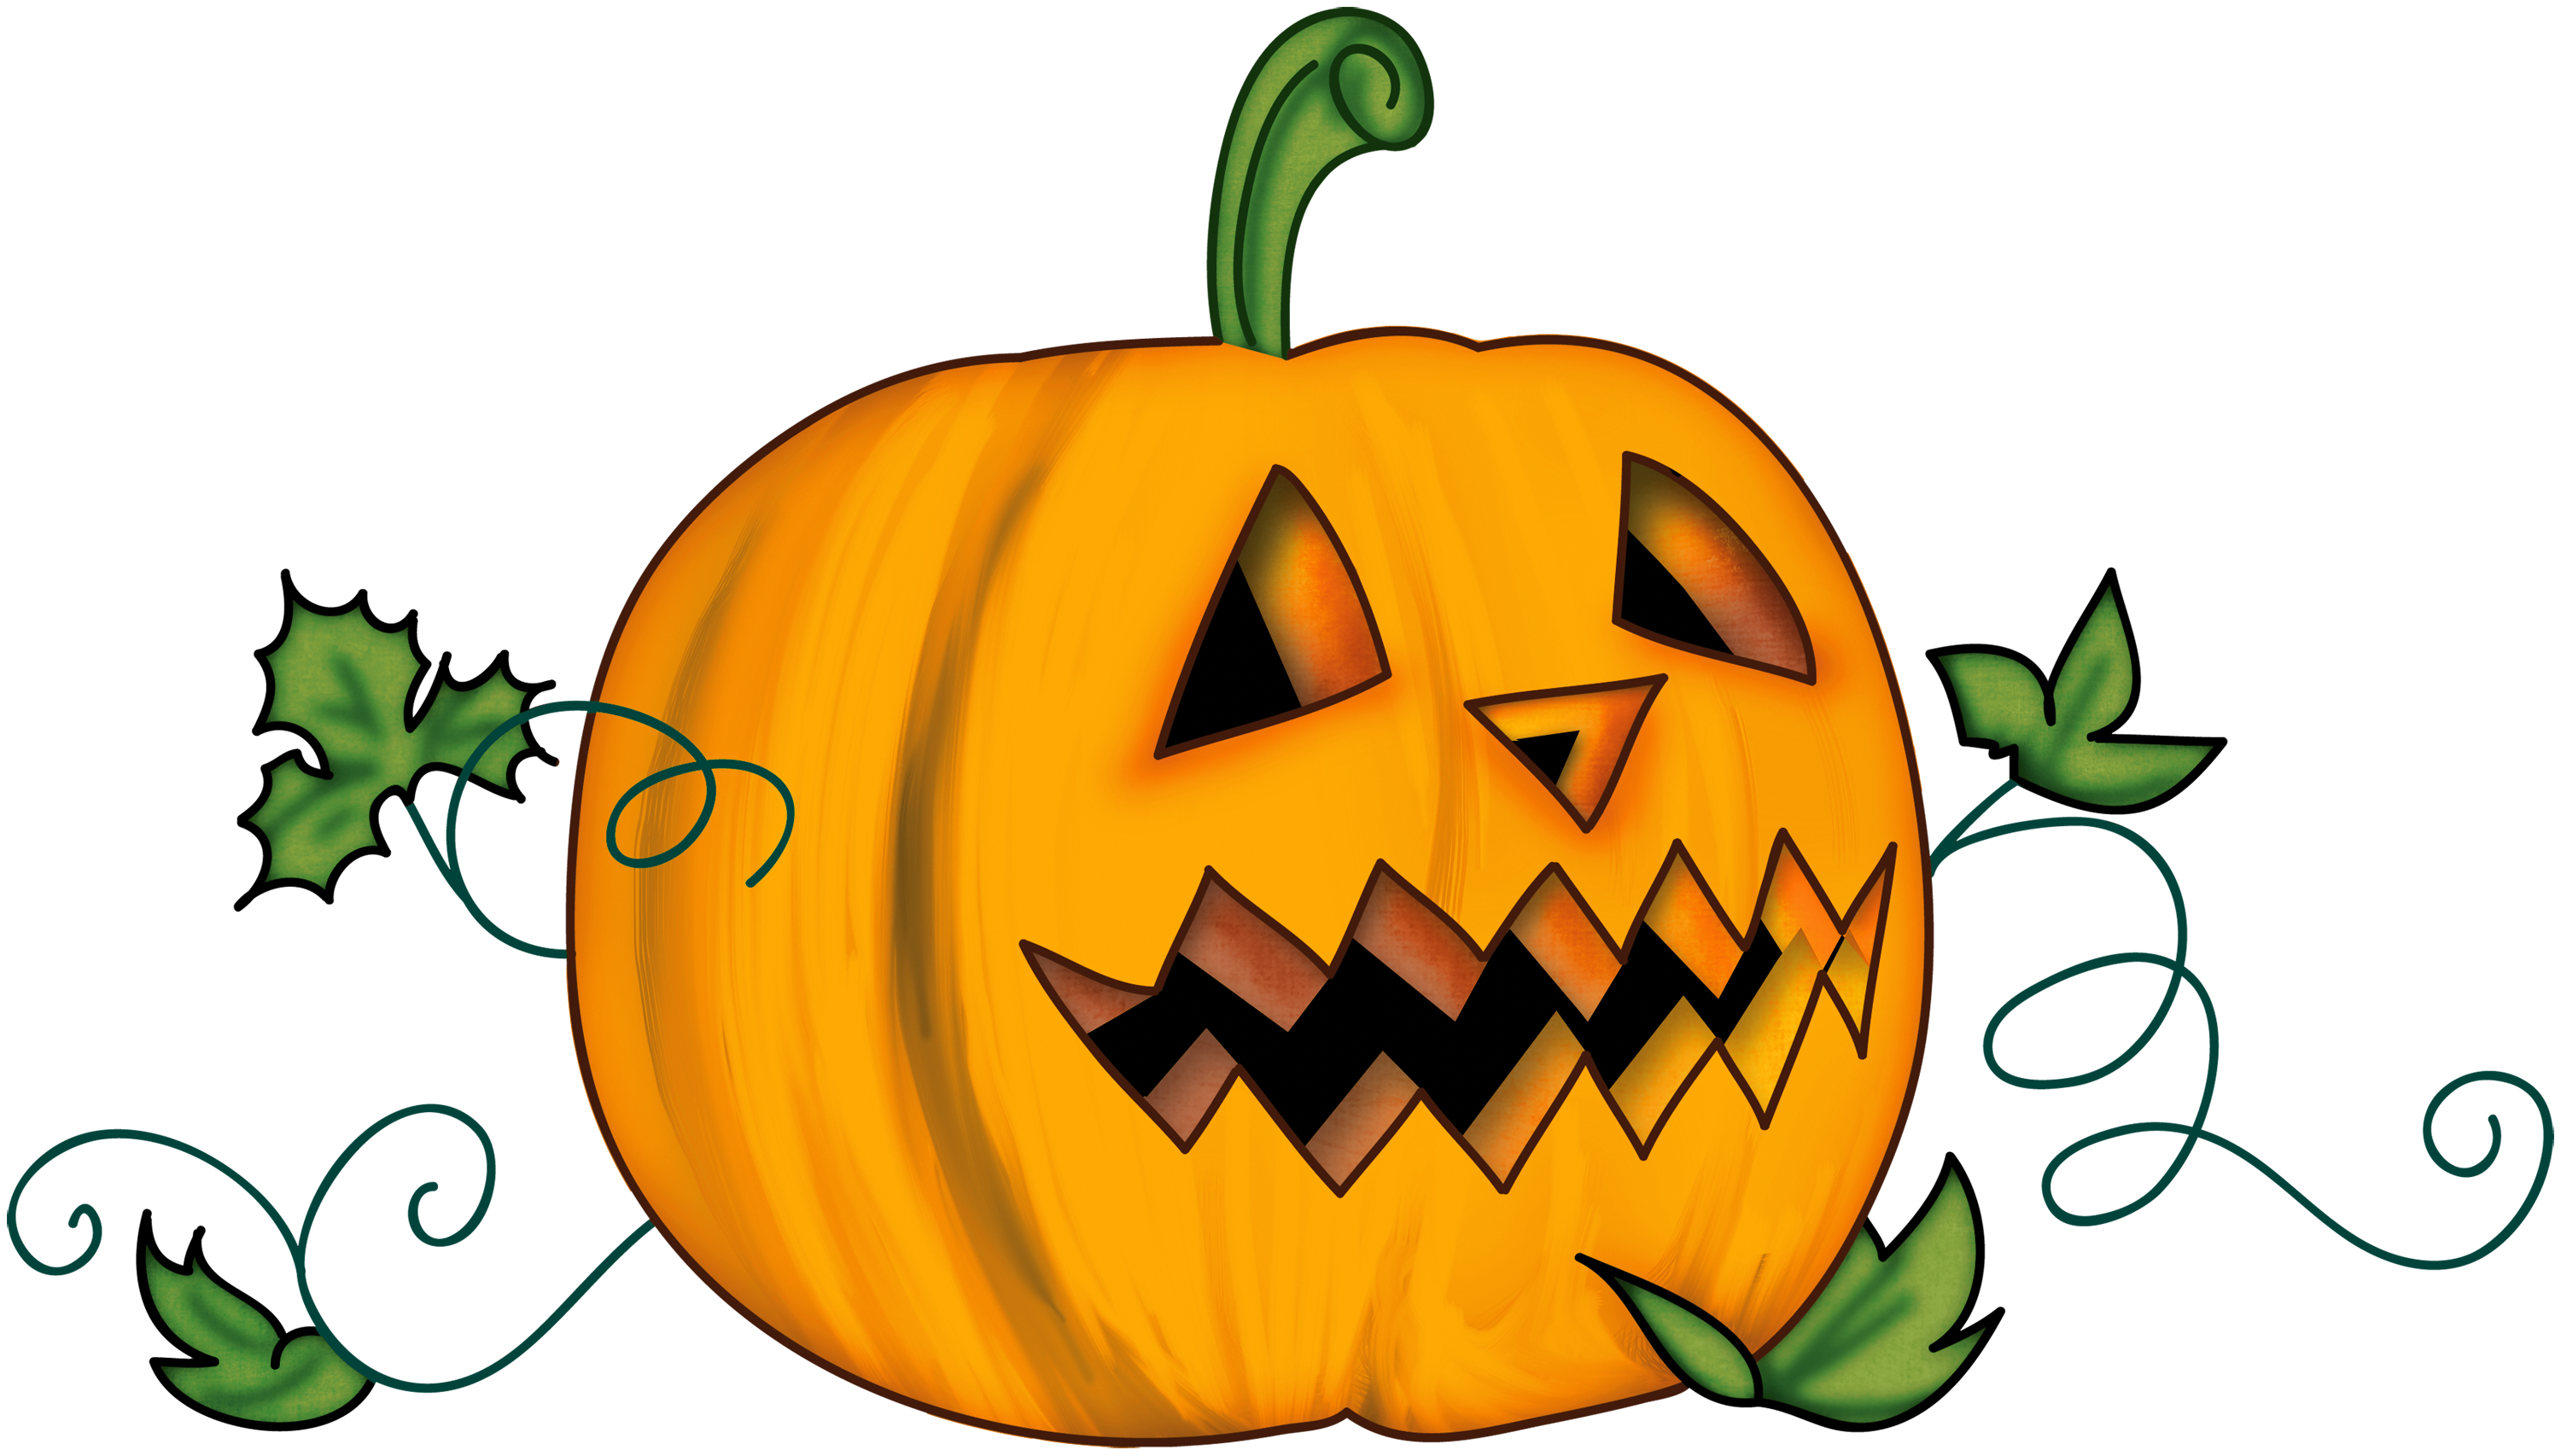 Halloween clipart cute pumpkin graphic royalty free Free Pumpkin Clipart at GetDrawings.com | Free for personal use Free ... graphic royalty free